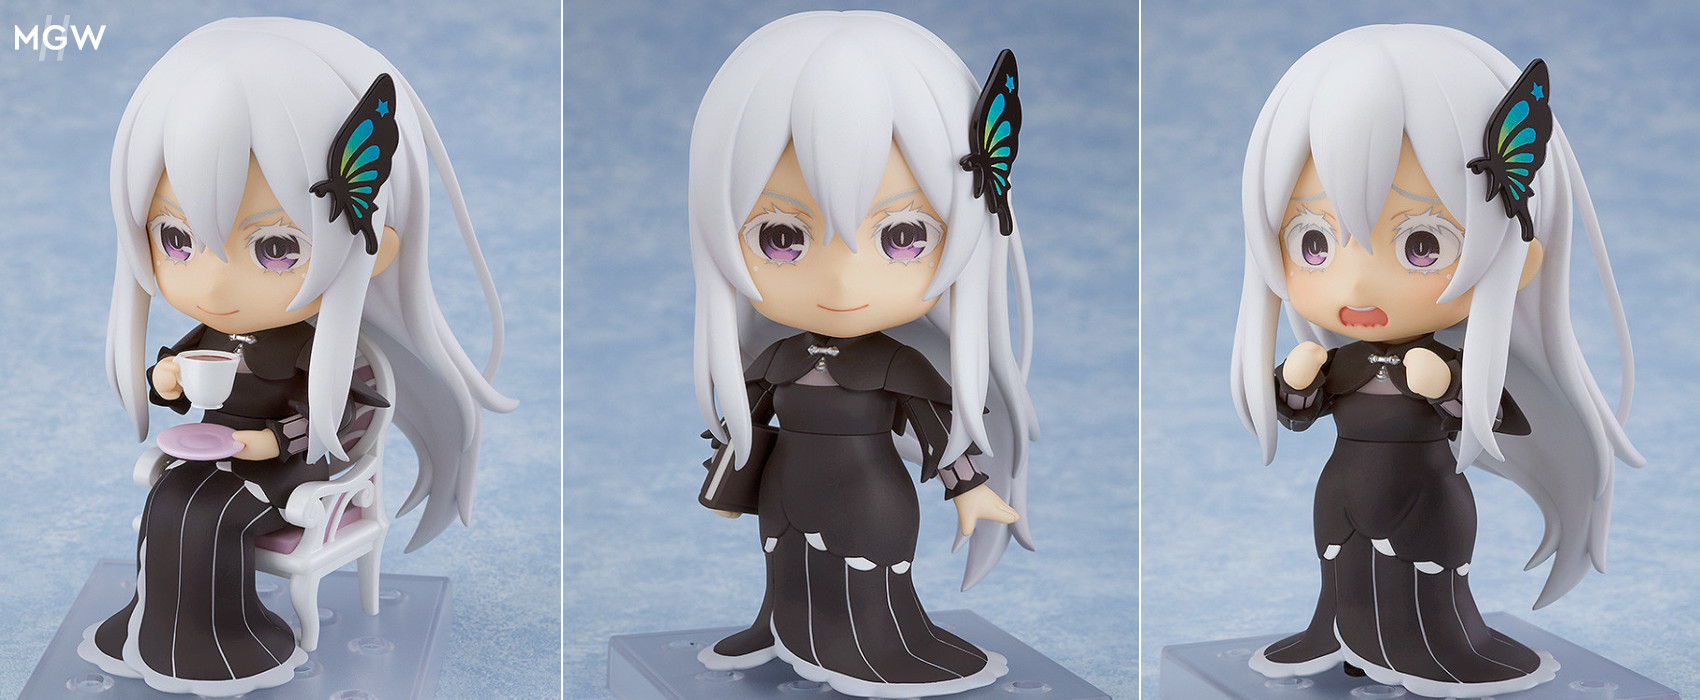 Nendoroid Echidna by Good Smile company from ReZERO Starting Life in Another World